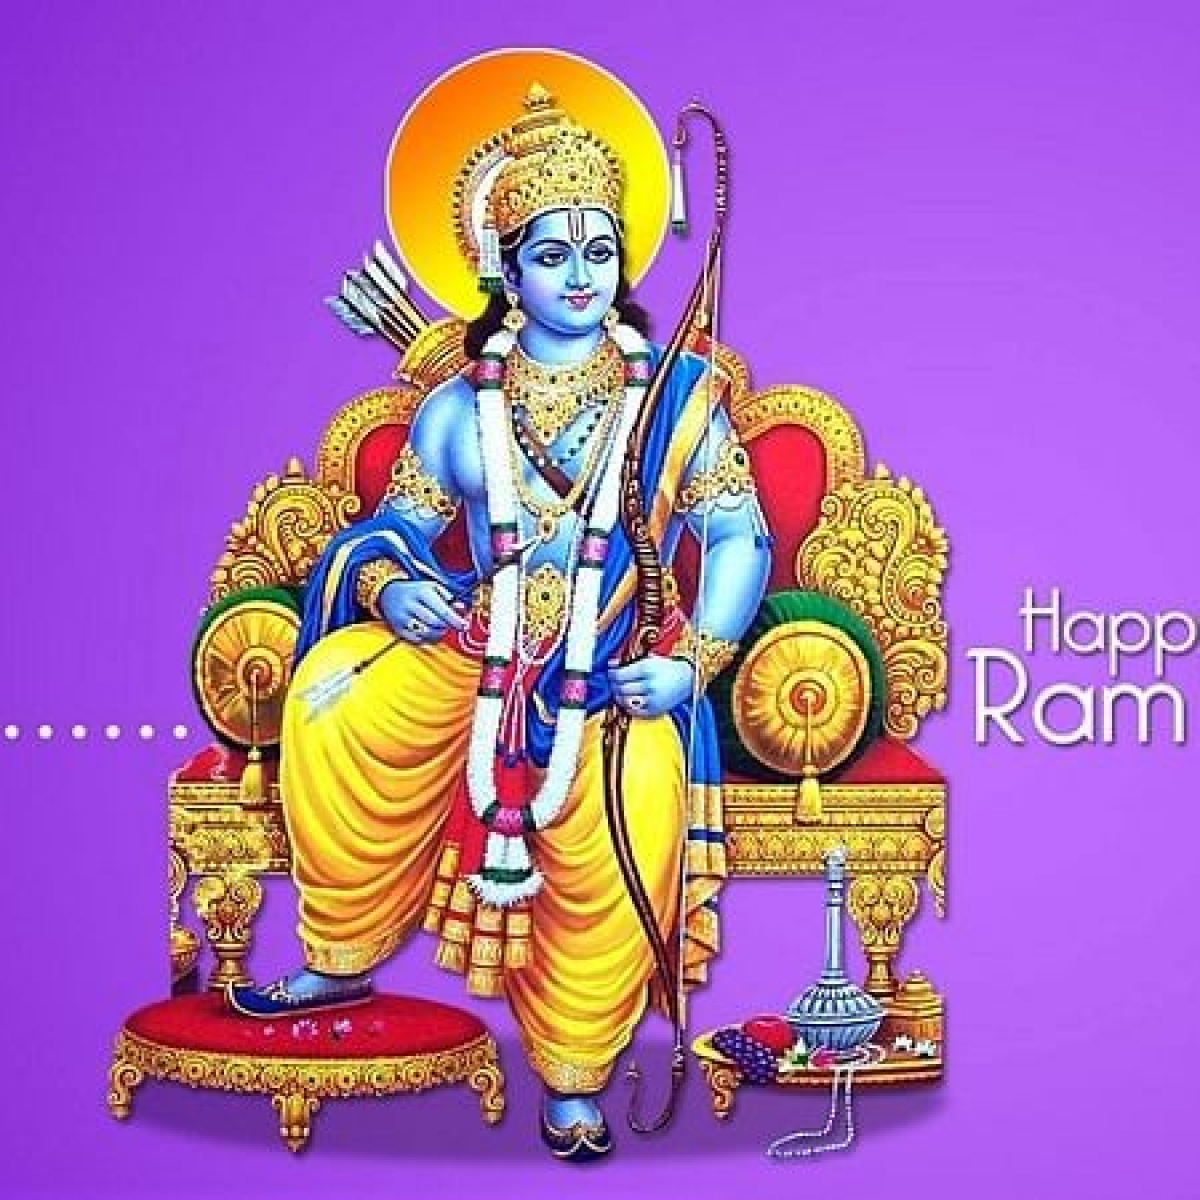 Ram Navami 2021: Wishes, Greetings, SMS, to share on WhatsApp, Facebook, and Instagram